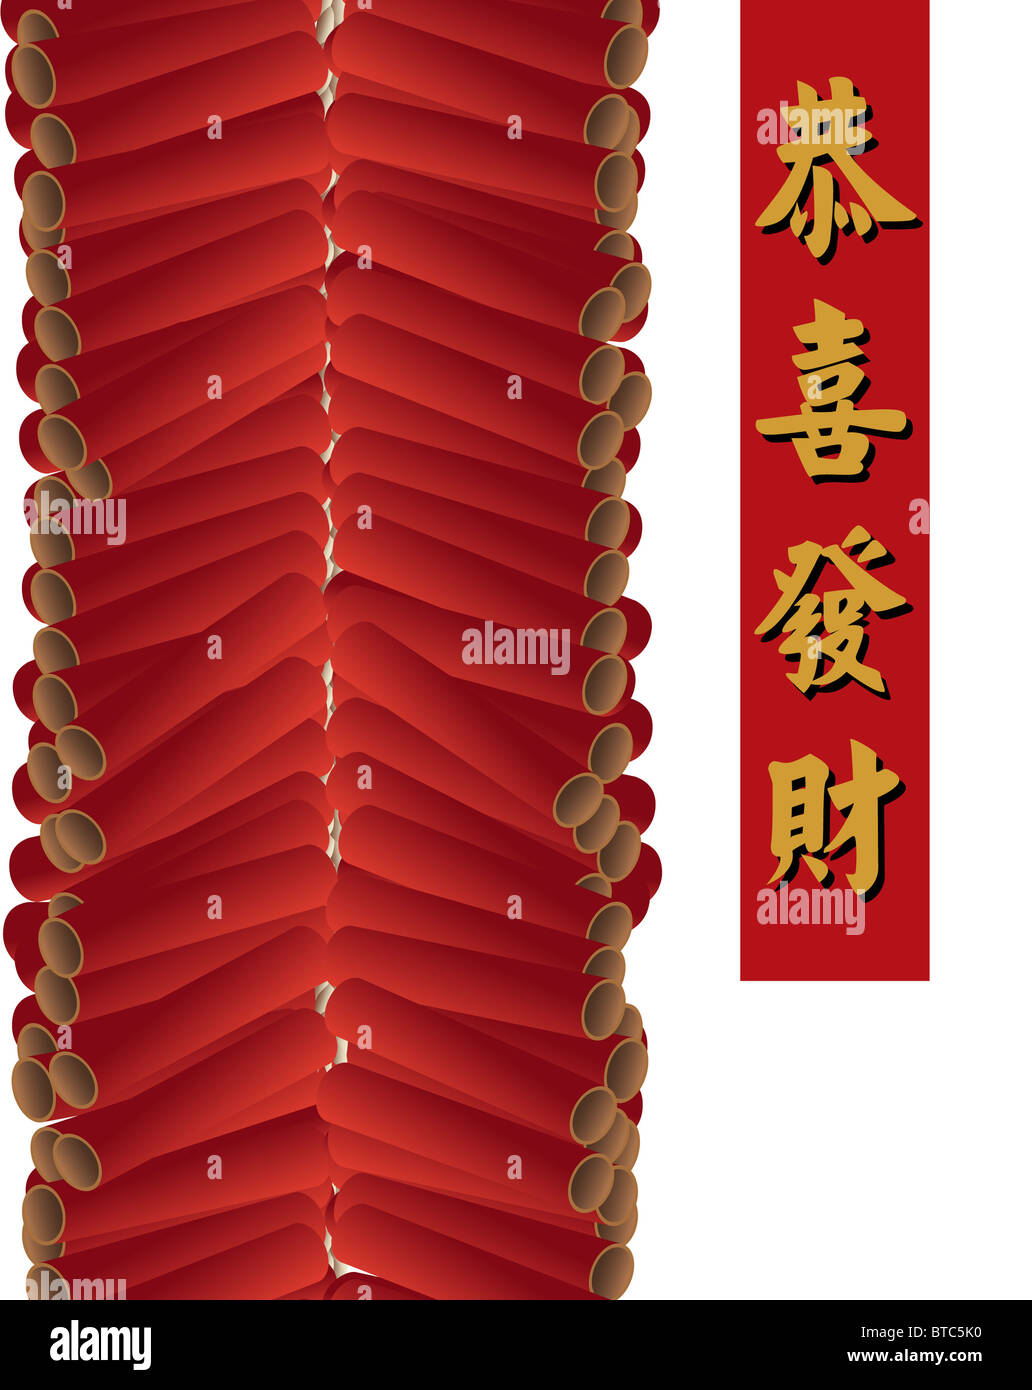 Chinese red firecrackers on white background - Stock Image